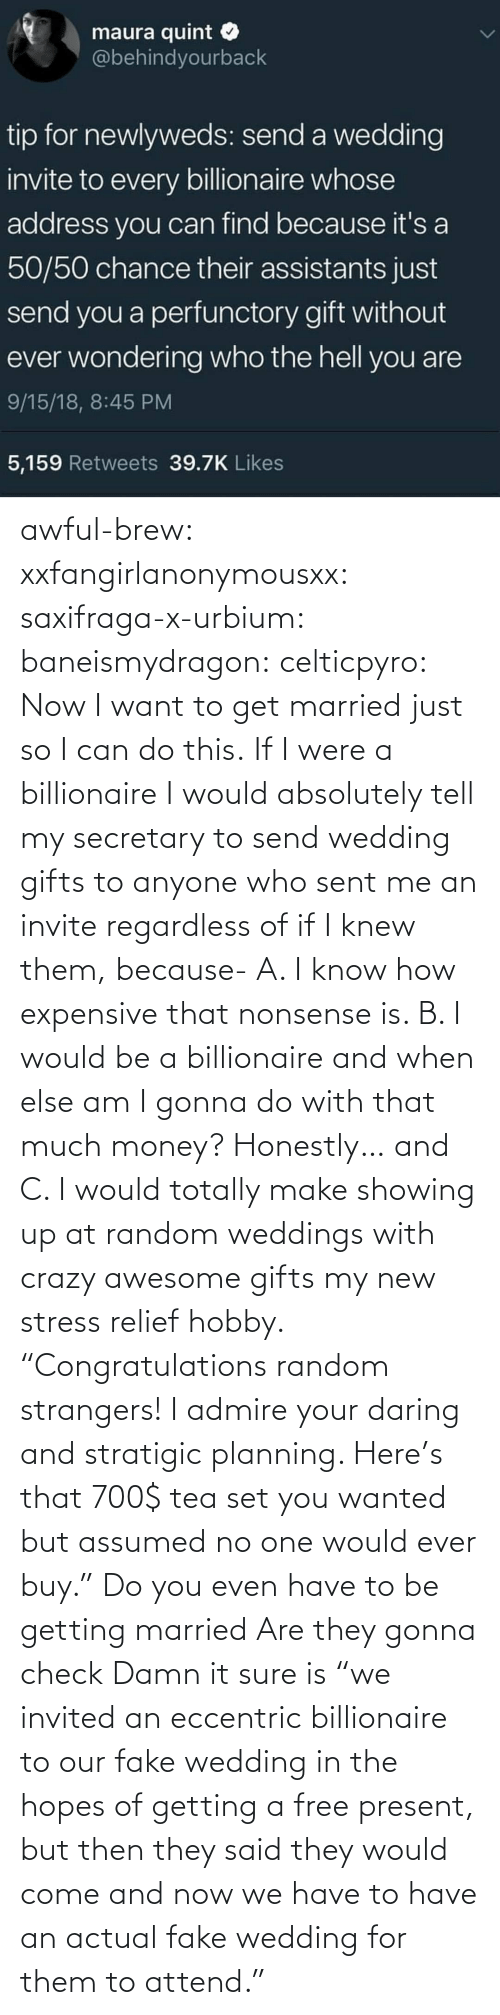 "And Now: awful-brew:  xxfangirlanonymousxx:  saxifraga-x-urbium:  baneismydragon:  celticpyro: Now I want to get married just so I can do this.  If I were a billionaire I would absolutely tell my secretary to send wedding gifts to anyone who sent me an invite regardless of if I knew them, because- A. I know how expensive that nonsense is. B. I would be a billionaire and when else am I gonna do with that much money? Honestly… and C. I would totally make showing up at random weddings with crazy awesome gifts my new stress relief hobby. ""Congratulations random strangers! I admire your daring and stratigic planning. Here's that 700$ tea set you wanted but assumed no one would ever buy.""   Do you even have to be getting married Are they gonna check   Damn it sure is  ""we invited an eccentric billionaire to our fake wedding in the hopes of getting a free present, but then they said they would come and now we have to have an actual fake wedding for them to attend."""